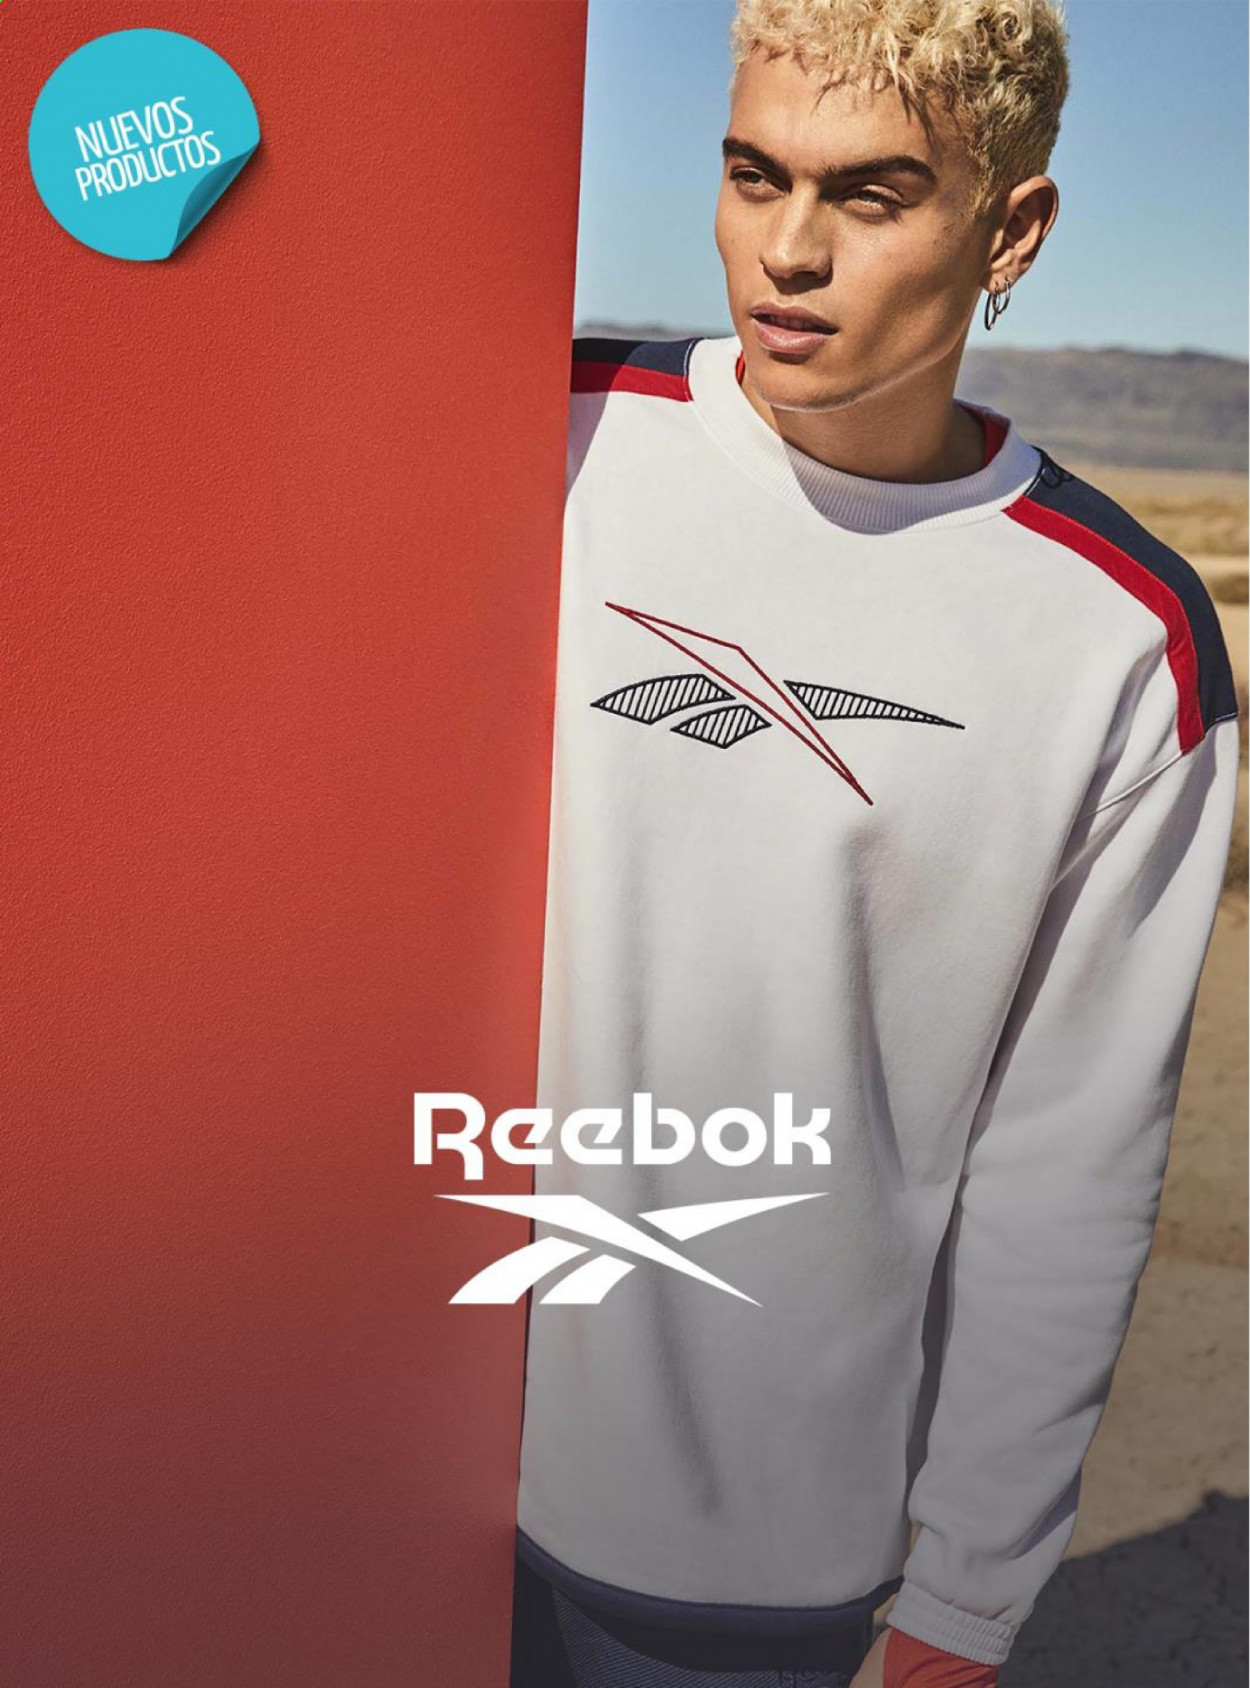 Folleto actual Andrea - Ventas - reebok. Página 1.